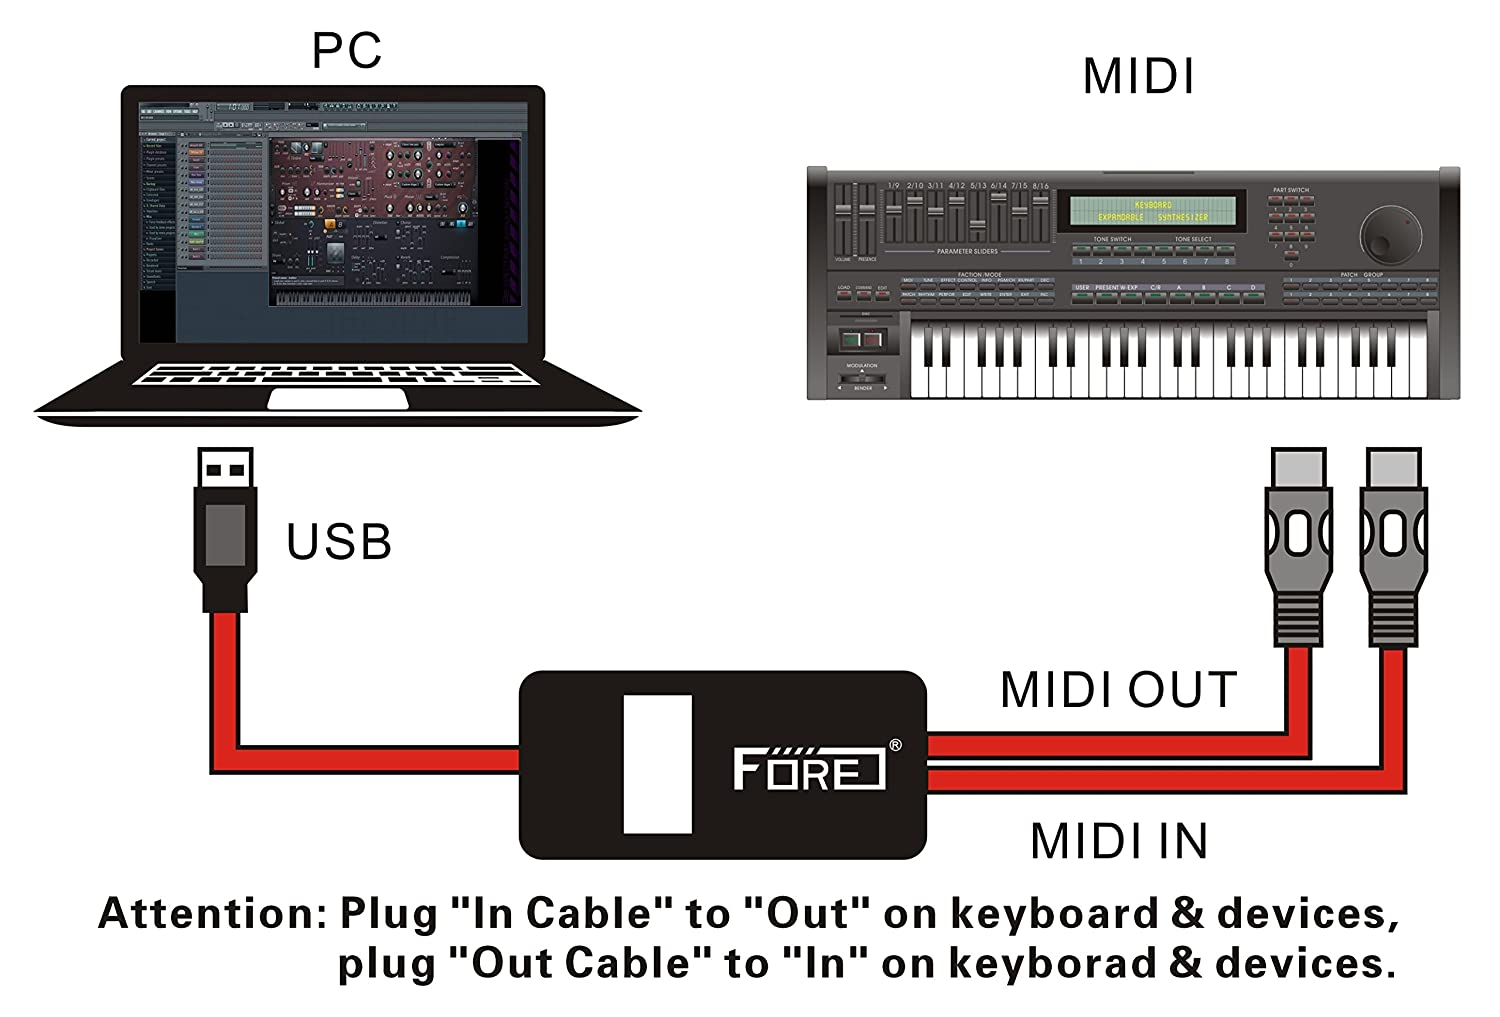 Primer plano USB IN-OUT MIDI convertidor de interfaz/adaptador con 5 pines DIN MIDI CABLE para PC/portátil/Mac, color rojo: Amazon.es: Instrumentos ...